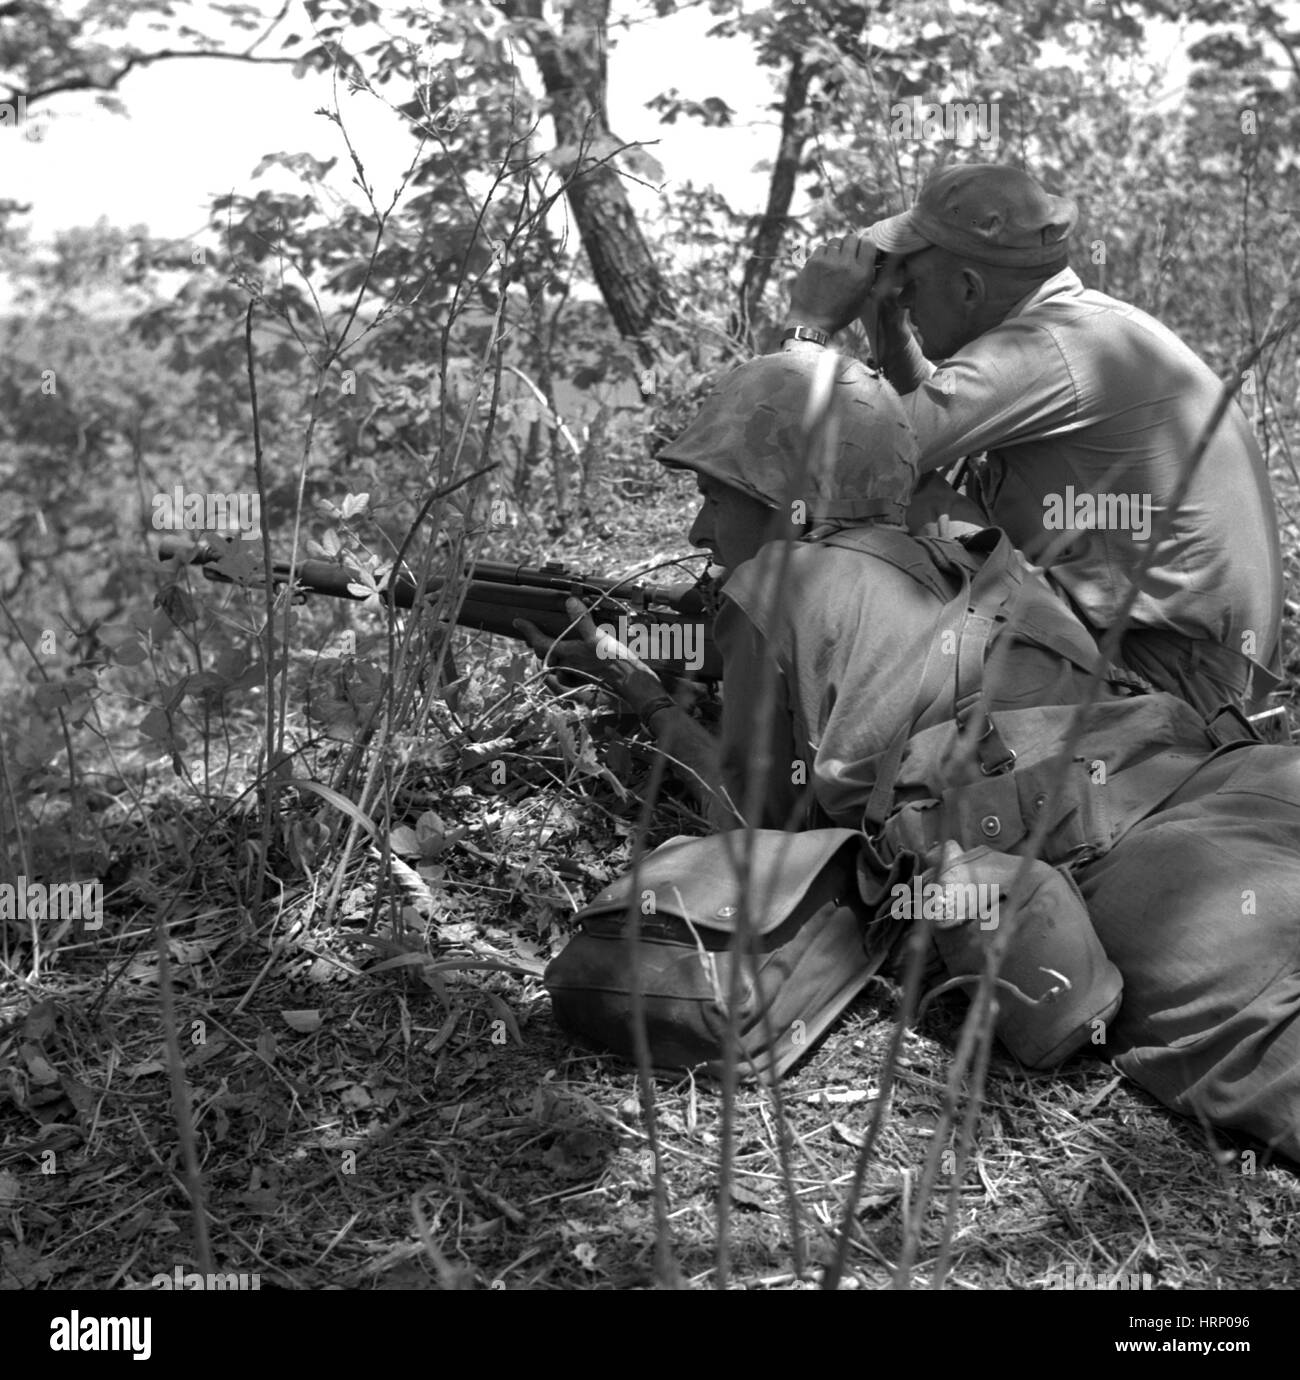 Korean War, USMC Sniper and Spotter - Stock Image